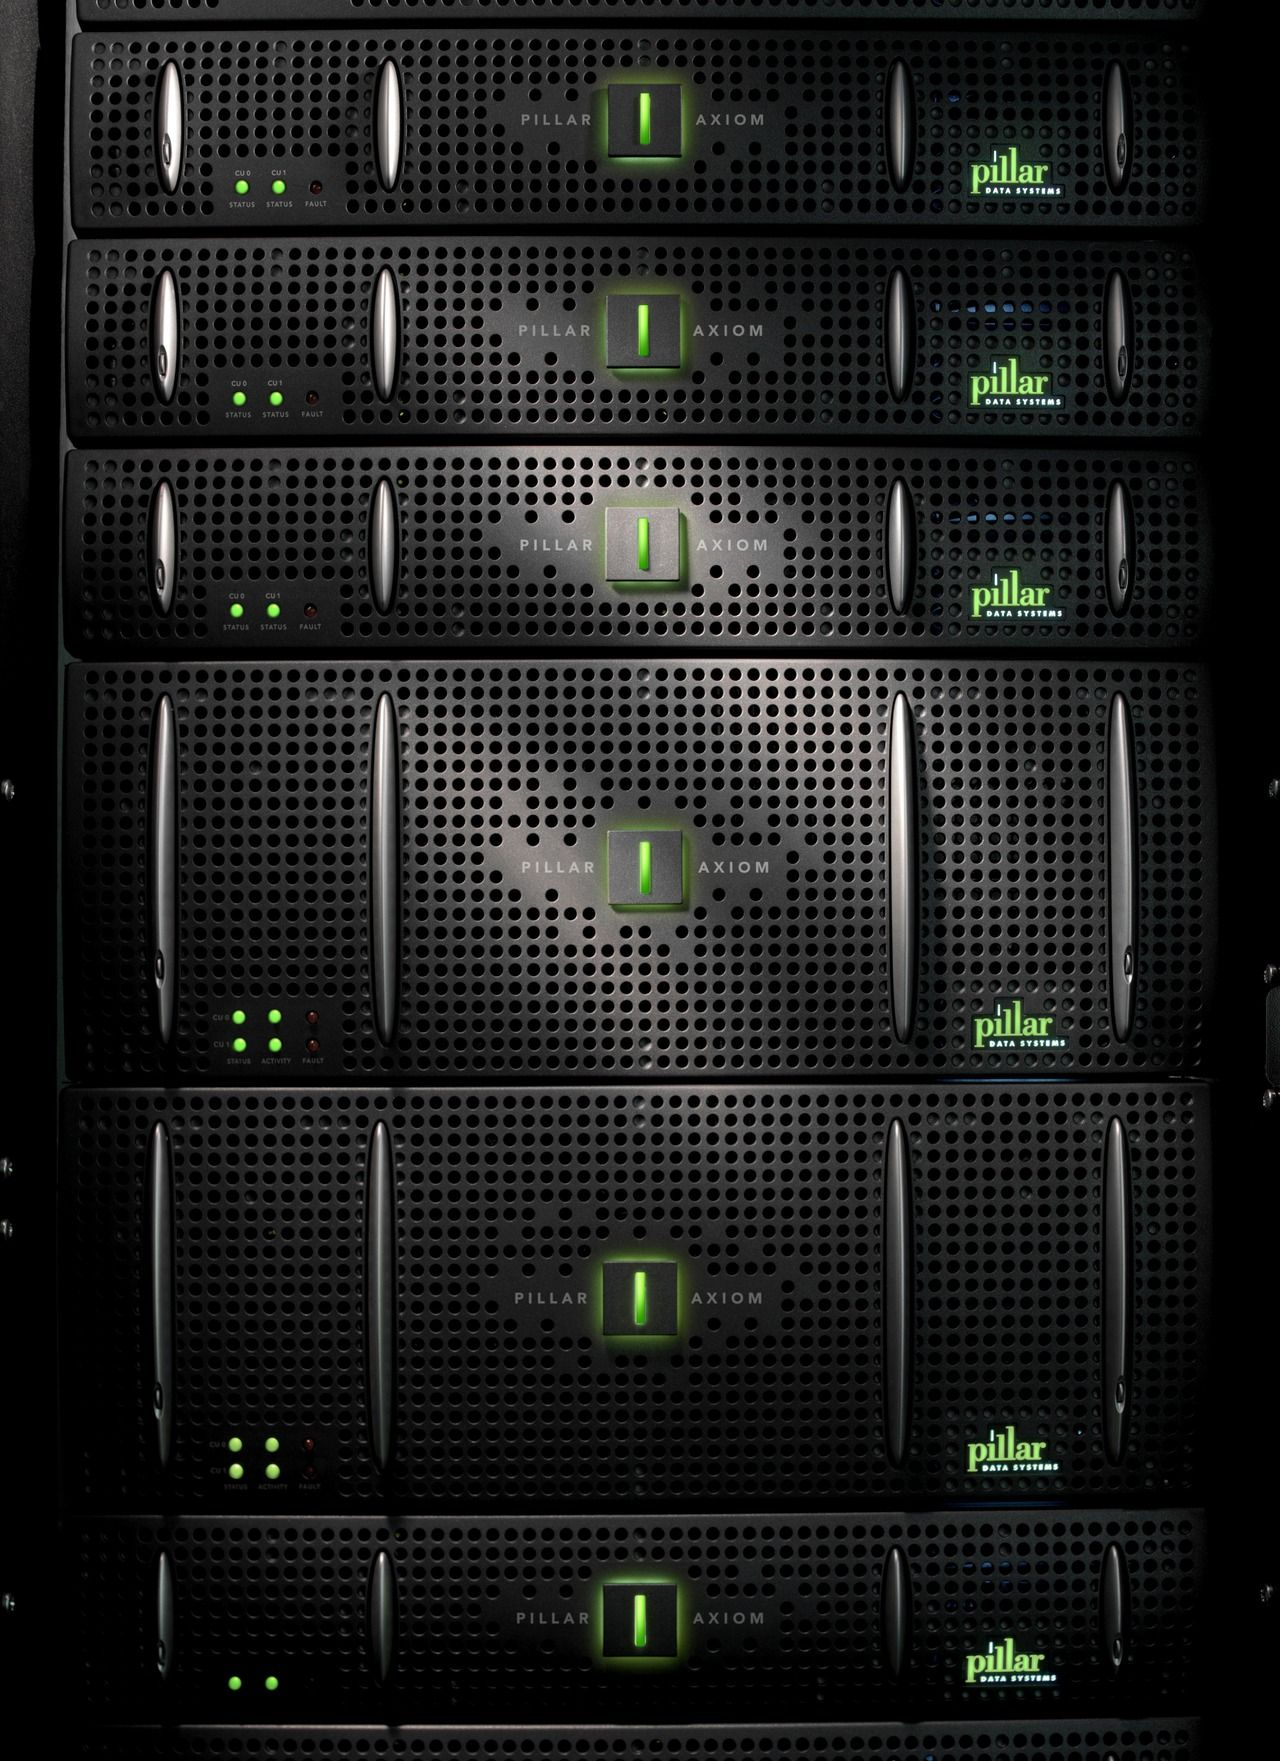 Pillar Axiom San A Modular Structure That Allows You To Scale Up To 1 6pb In Storage The Ssd Version With 13 X 200g Data Center Design Server Cabinet Server